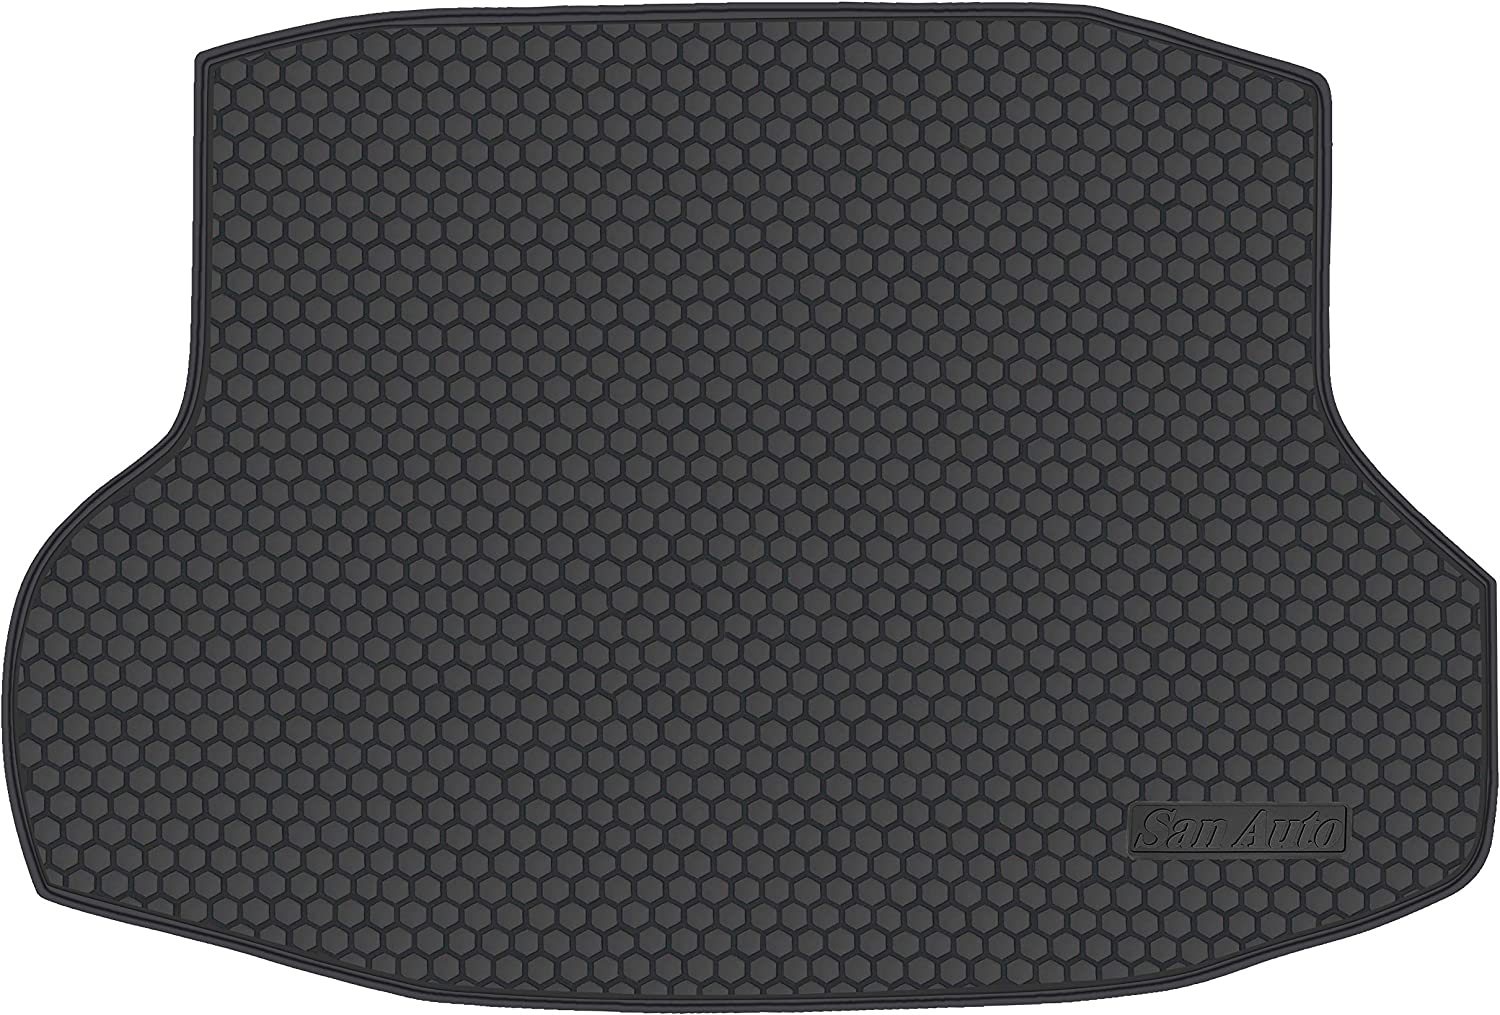 HD-Mart Car Rubber Floor Mat for Honda Civic 10th Generation 2016-2017-2018-2019 Custom Fit Full Black Auto Liner Mats All Weather Heavy Duty /& Odorless